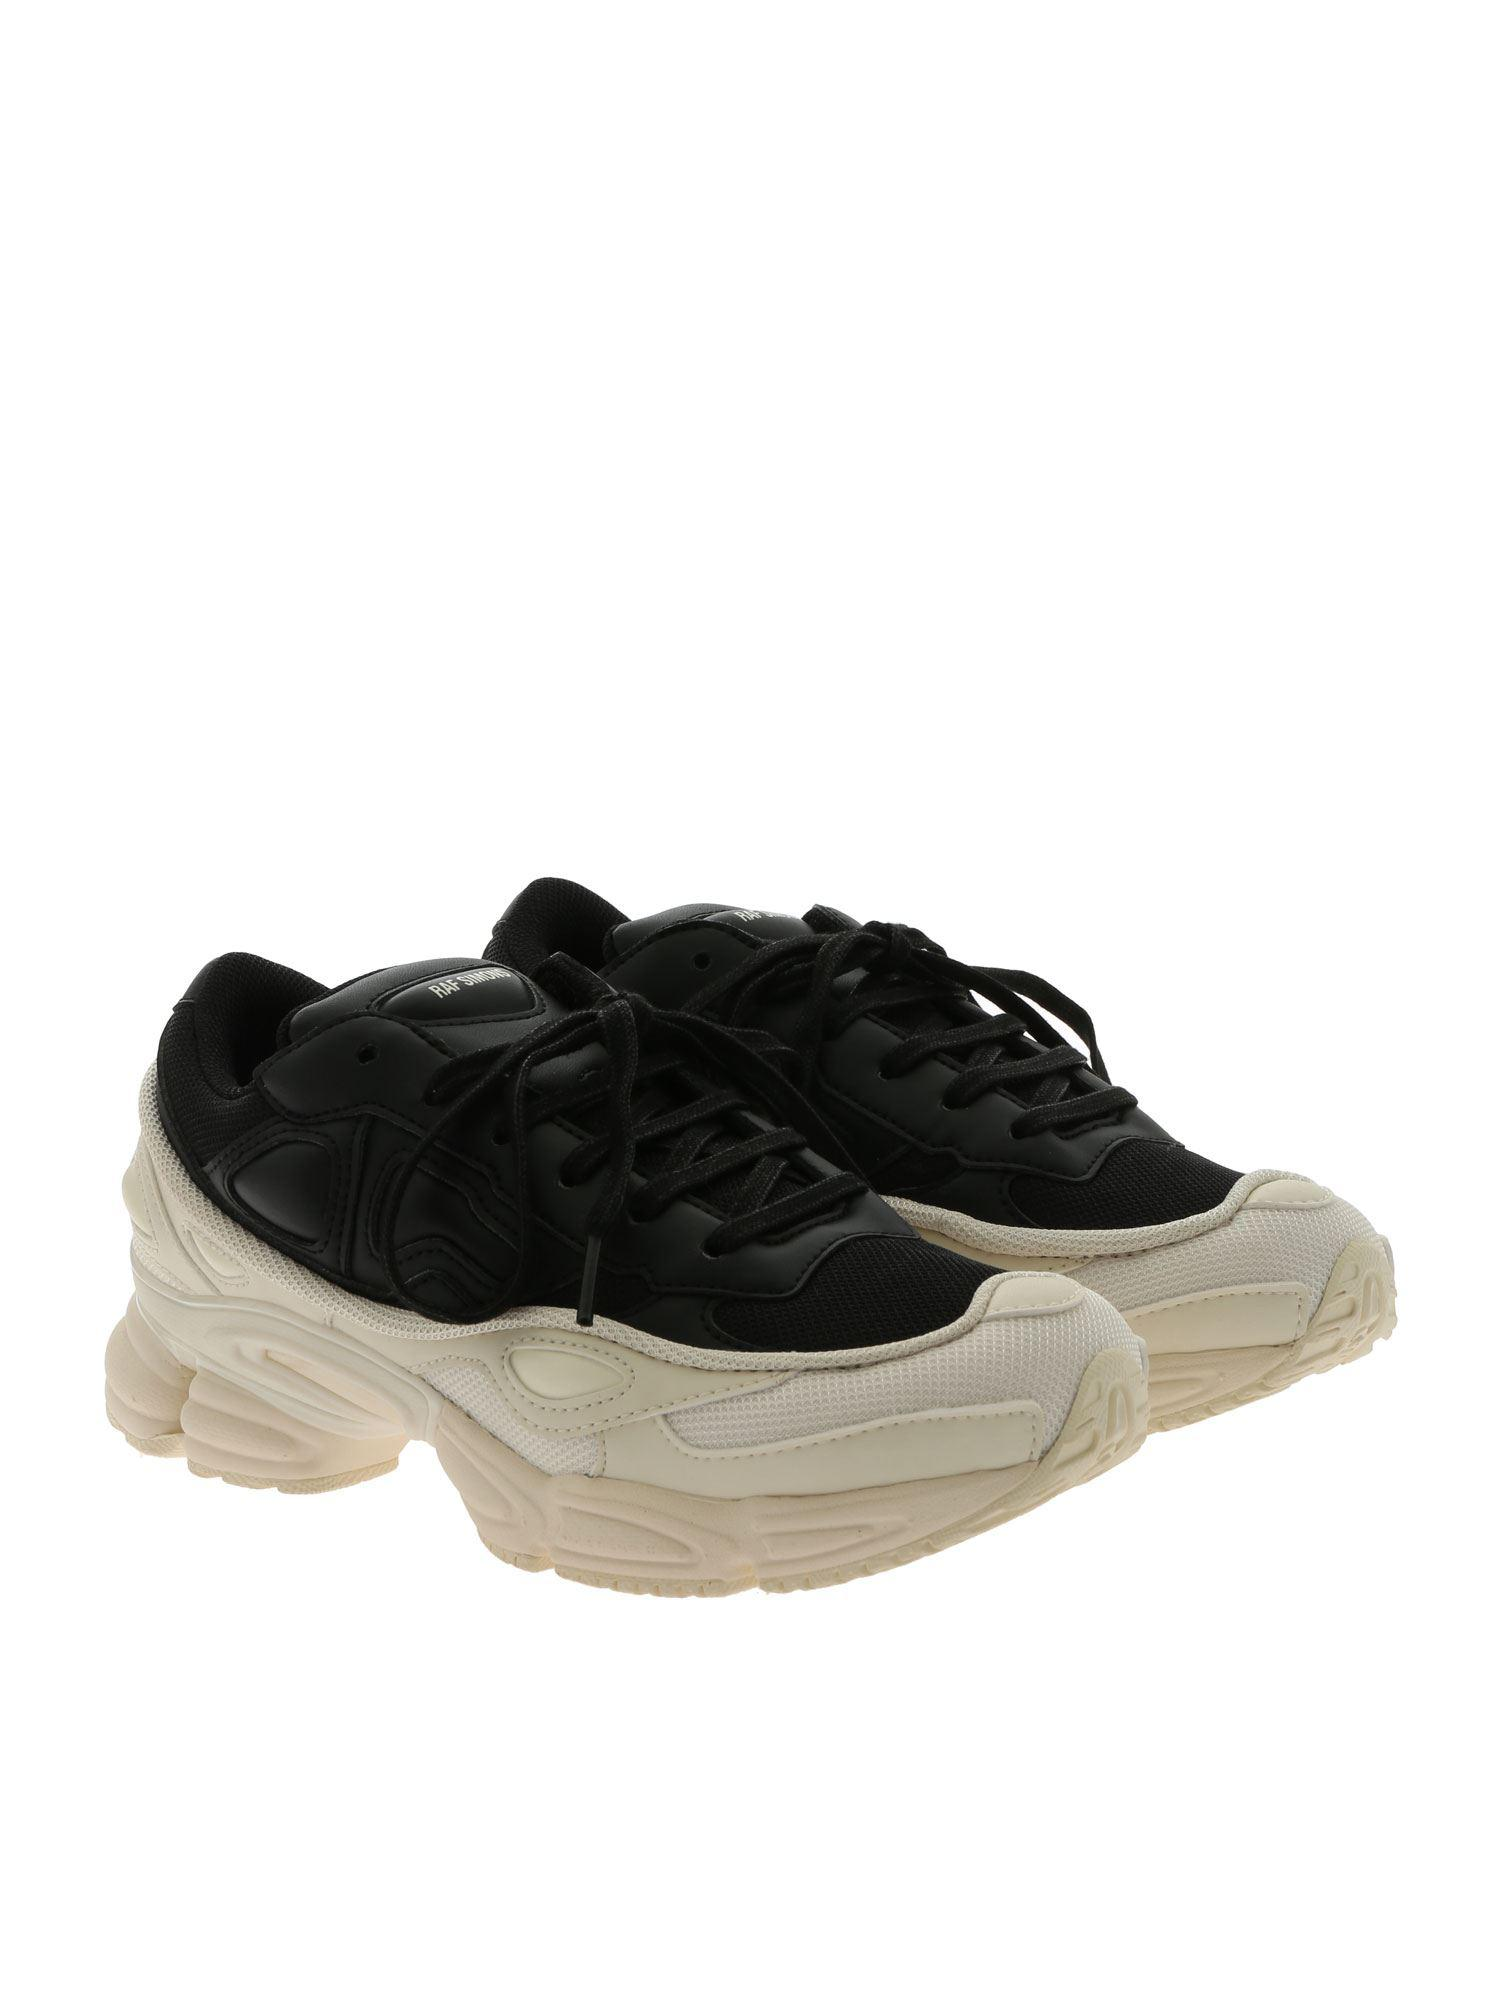 2a796d054d4dc7 Lyst - Adidas By Raf Simons Rs Ozweego Black Sneakers in Black for Men